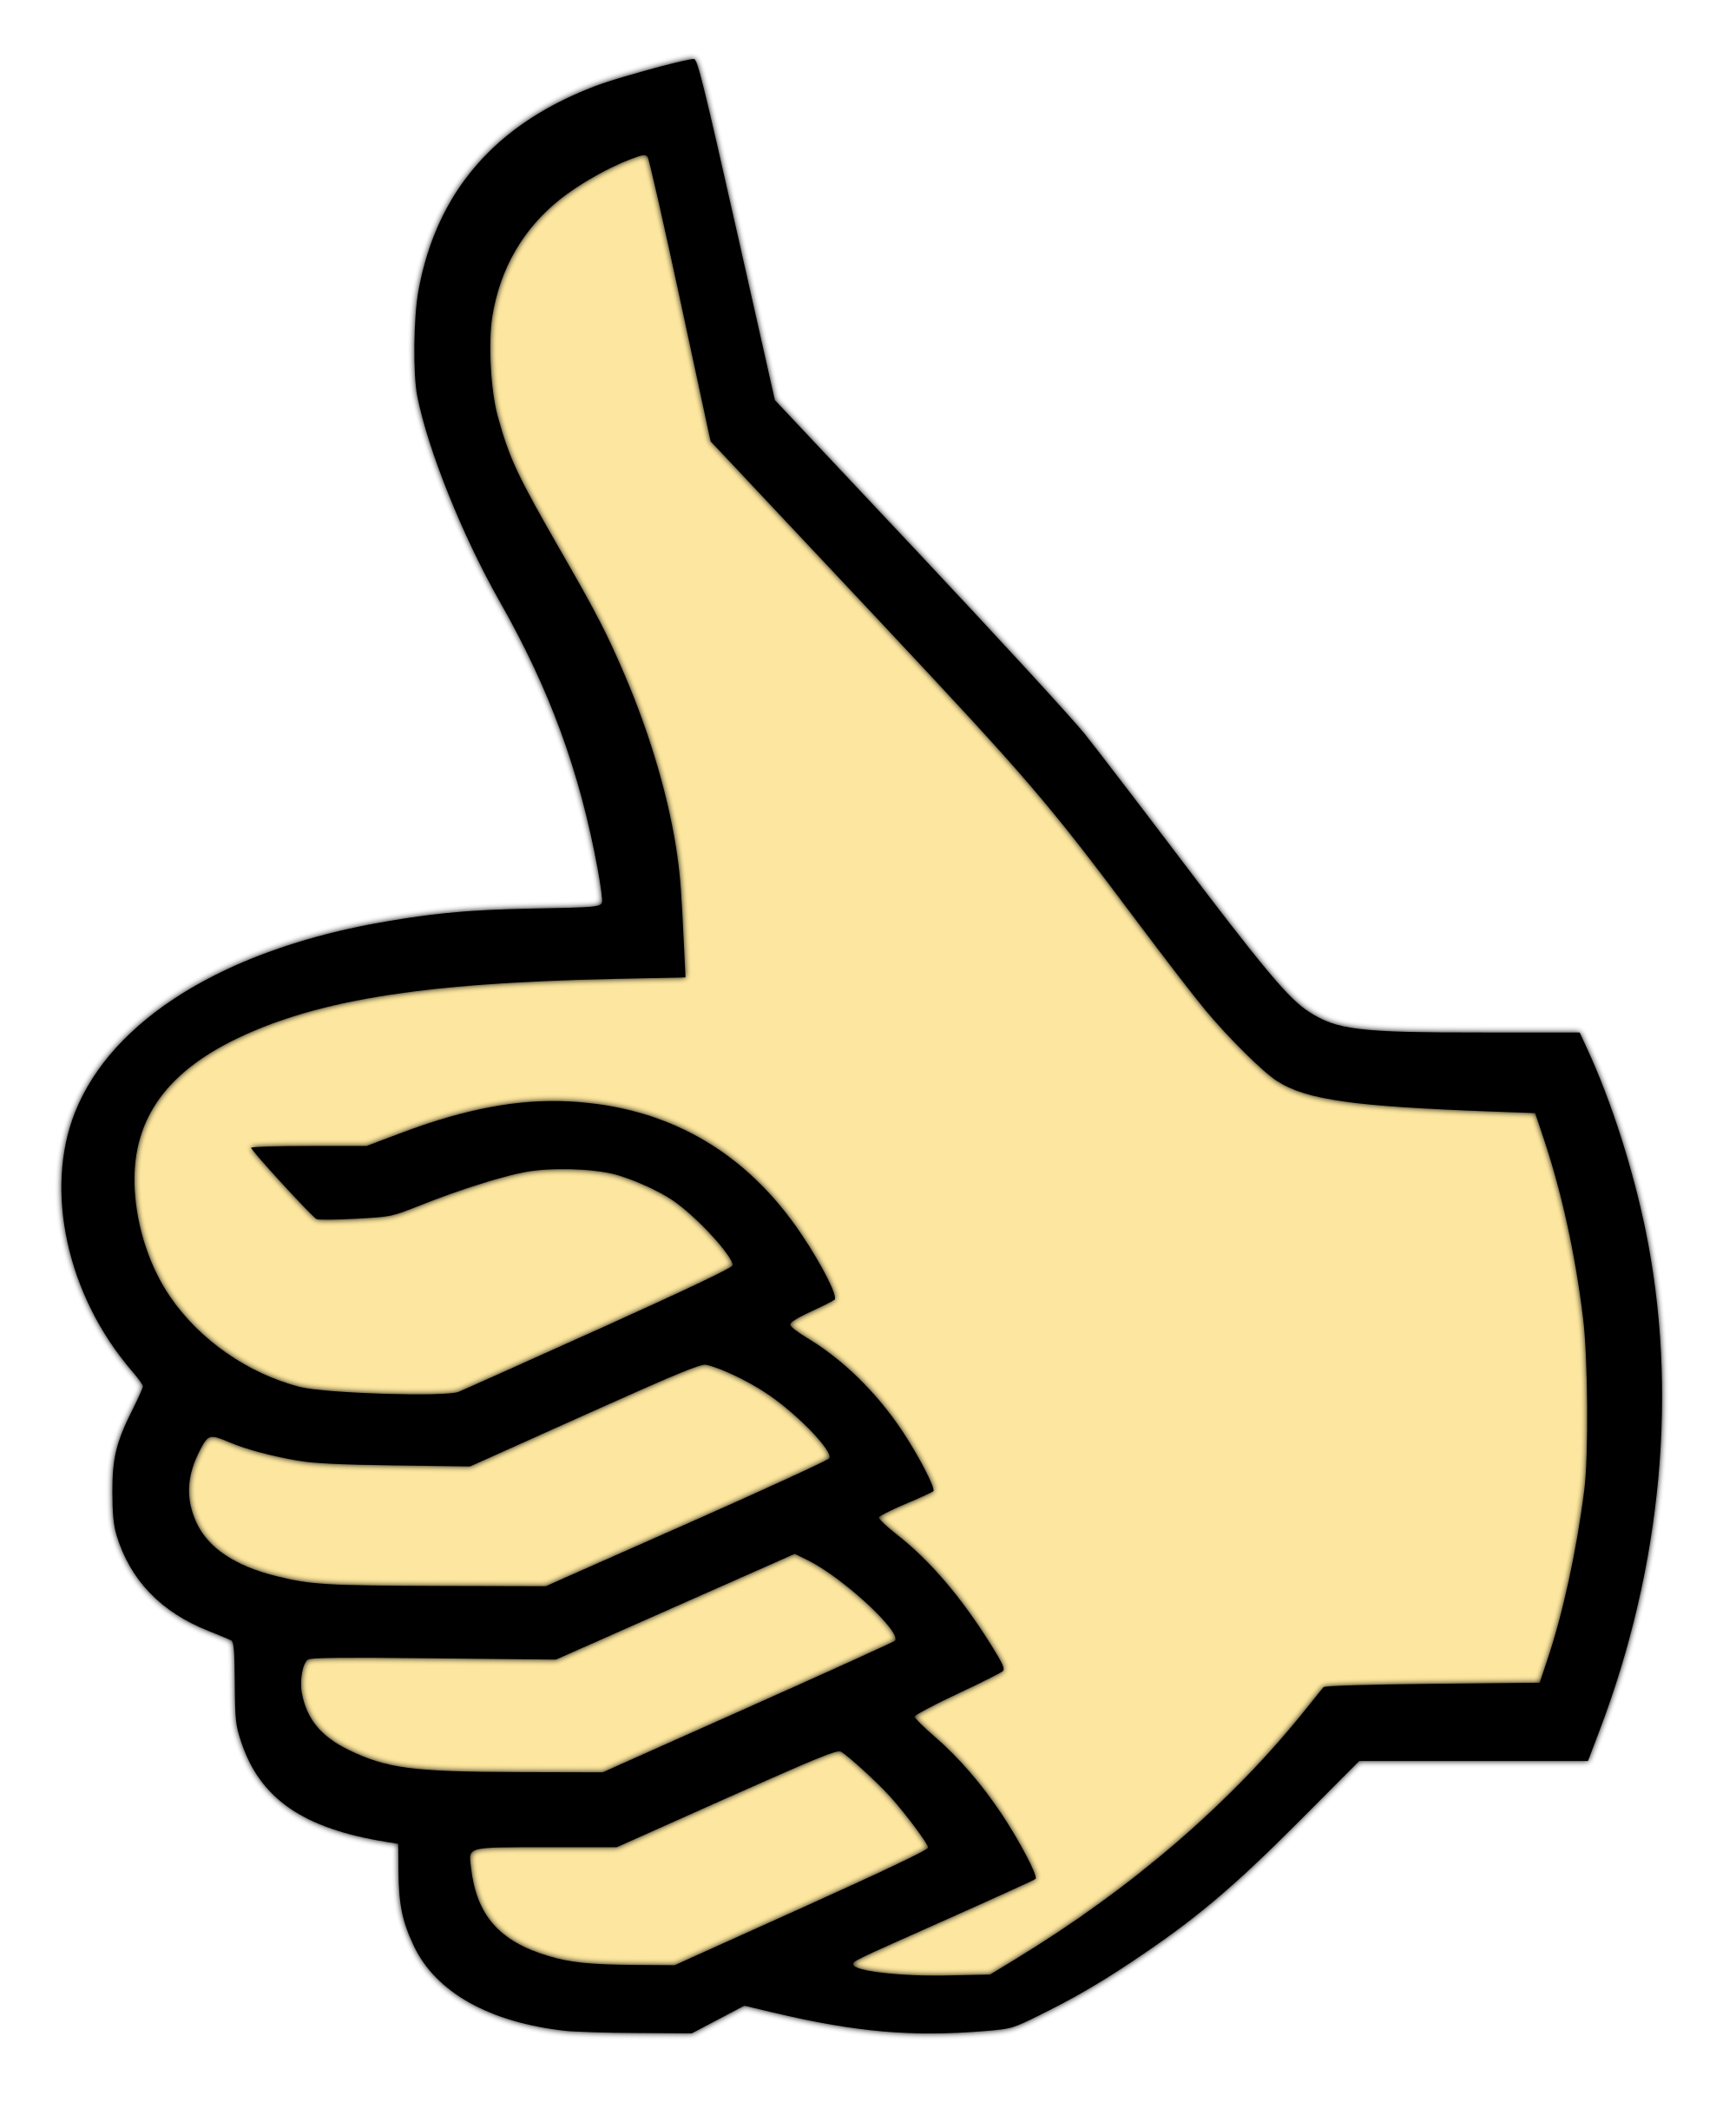 Clipart thumbs up gif royalty free File:Symbol thumbs up color.svg - Wikimedia Commons royalty free